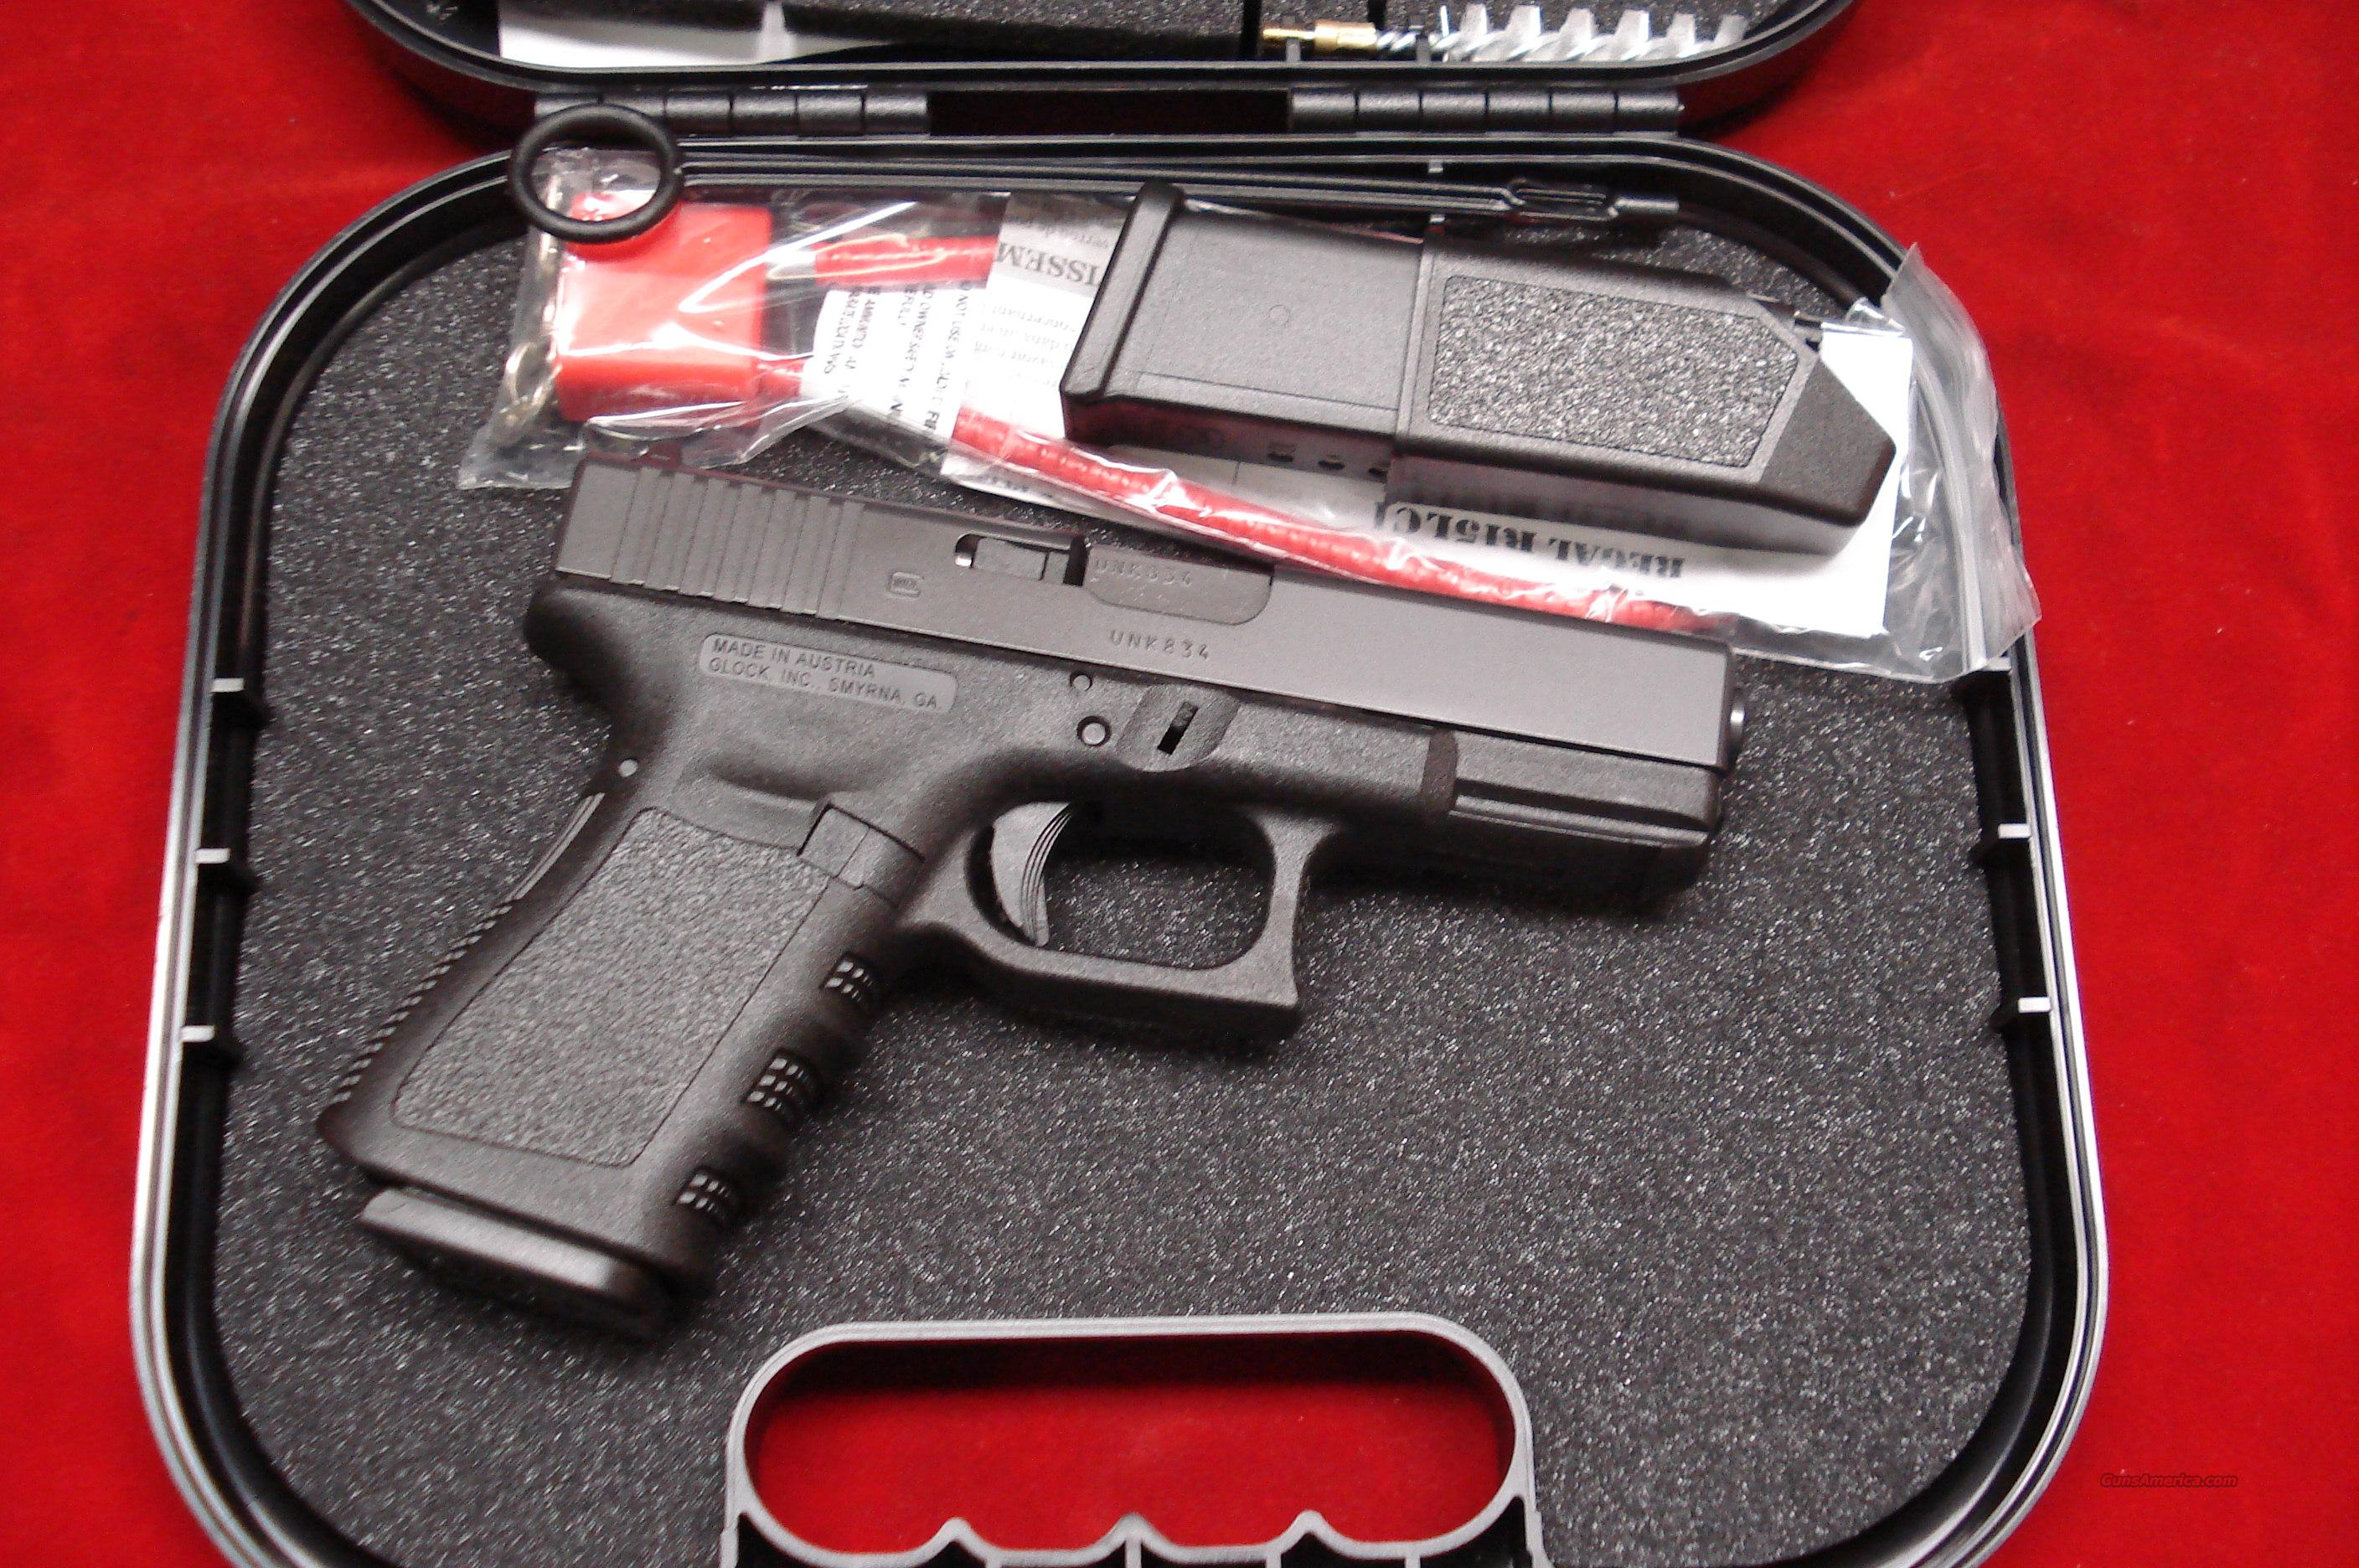 GLOCK MODEL 19 GEN 3 9MM W/10RD  MAGAZINES NEW  Guns > Pistols > Glock Pistols > 19